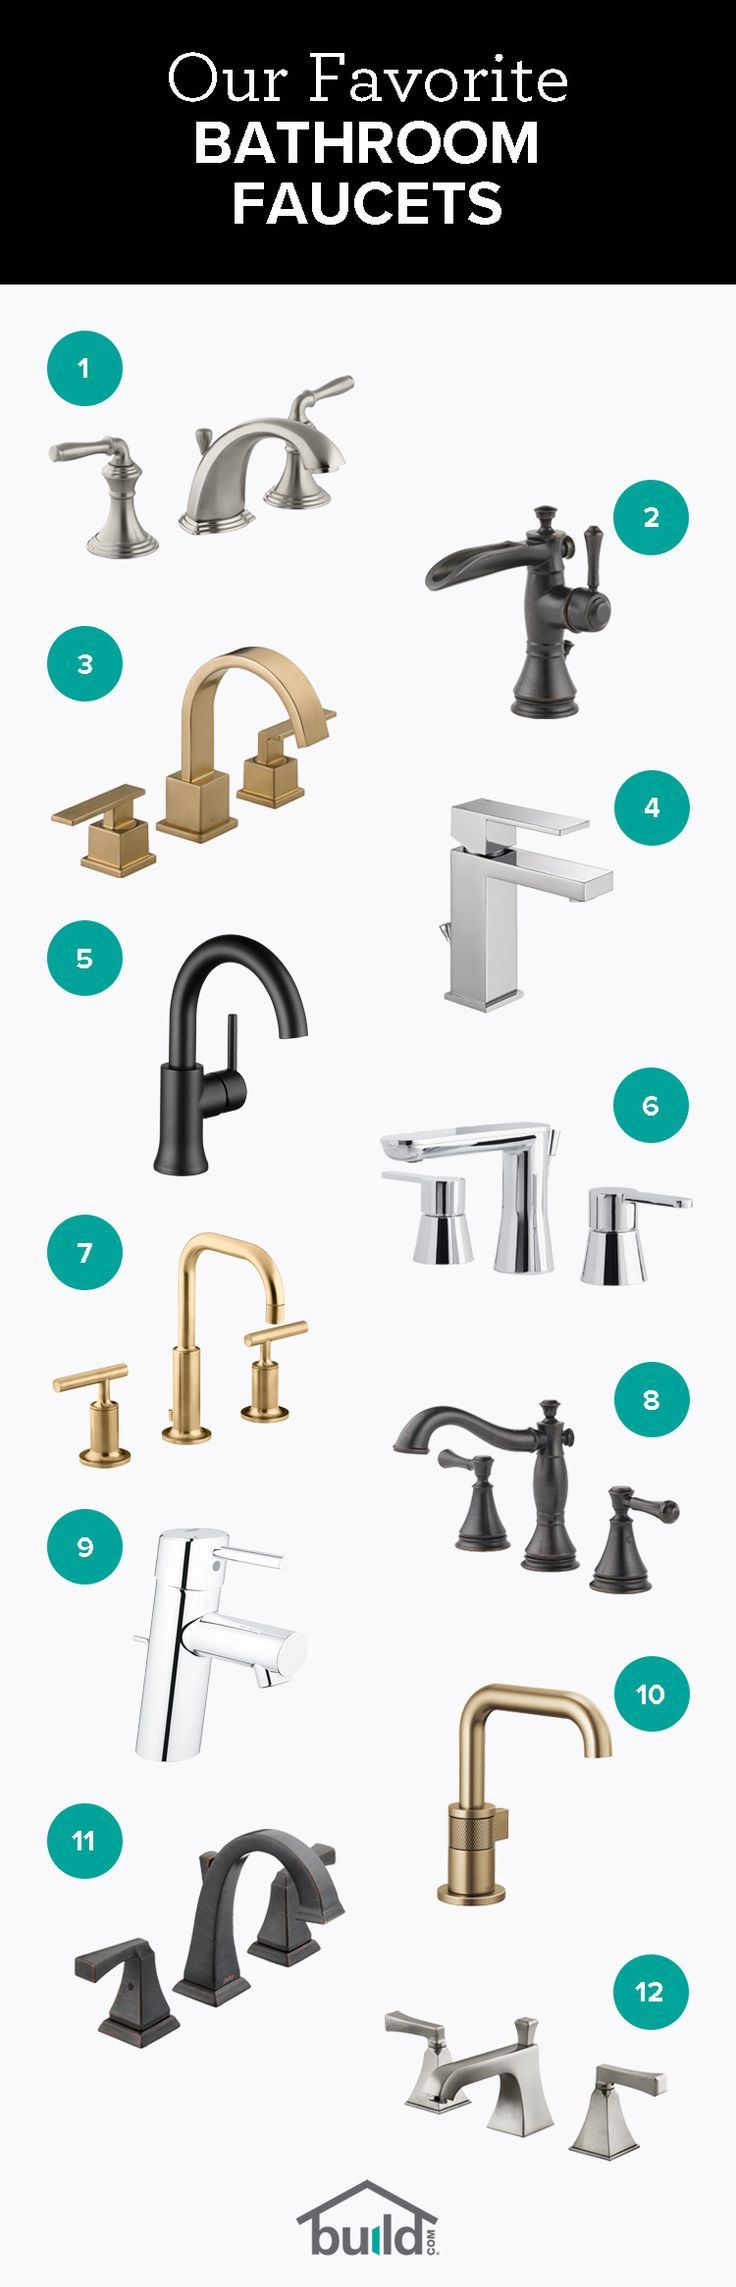 1. Kohler K-394-4-BN | 2. Delta 598LF-RBMPU | 3. Delta 3553LF-CZ | 4. Delta 567LF-PP | 5. Delta 559HA-BL-DST | 6. Miseno MNO361CP | 7. Kohler K-14406-4-BGD | 8. Delta 3597LF-RBMPU | 9. Grohe 3427000A | 10. Brizo 65035LF-GL | 11. Delta 3551LF-RB | 12. Kohler K-454-4V-BN | Bring sophistication and class to your bathroom with one of our favorite faucets.